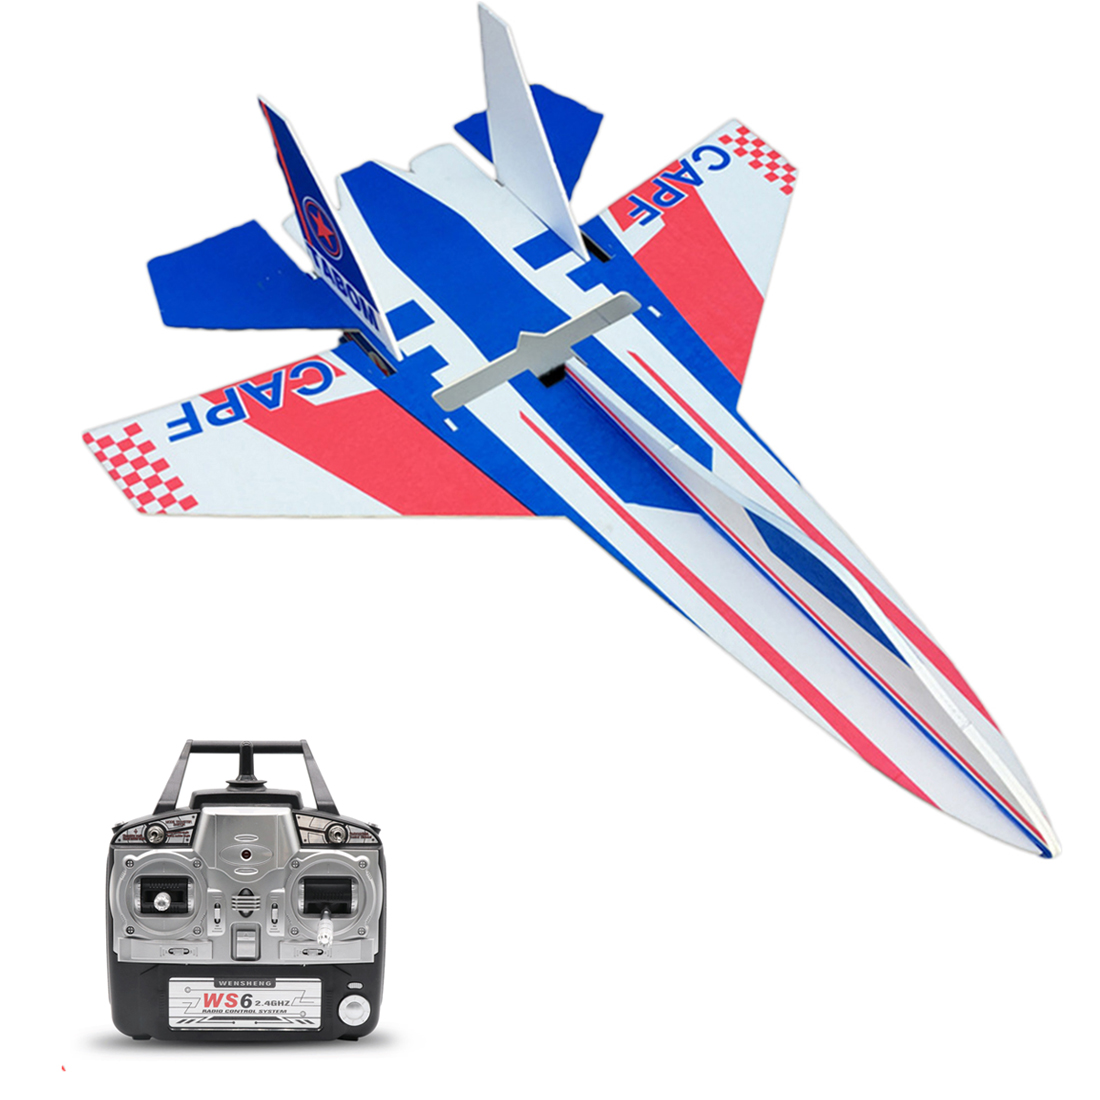 NewSu 27 2.4G 6CH DIY Remote Control Airplane Fixed Wing Plane Assembly Kit - Swat (No Assembly Tools)